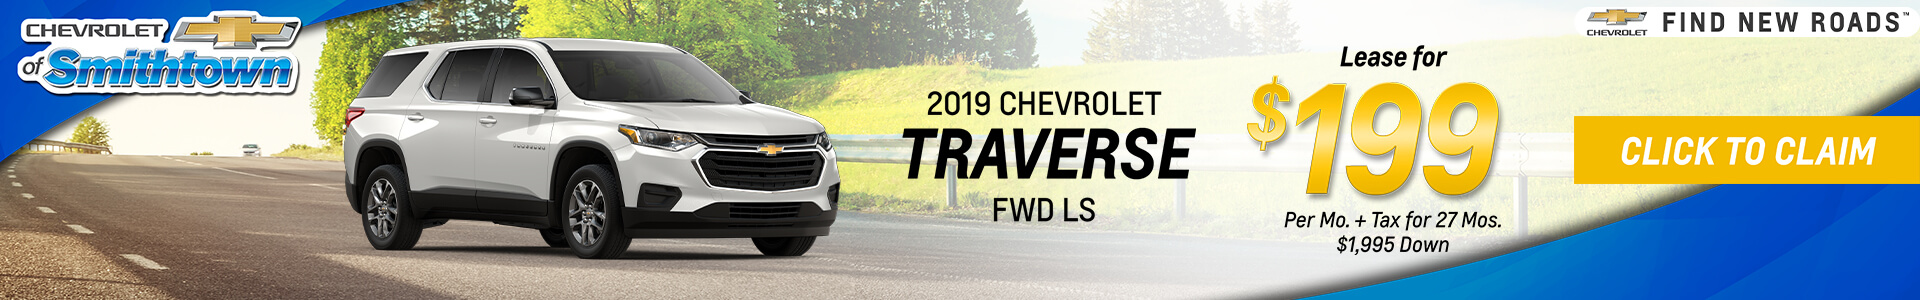 Chevrolet Traverse $199 Lease